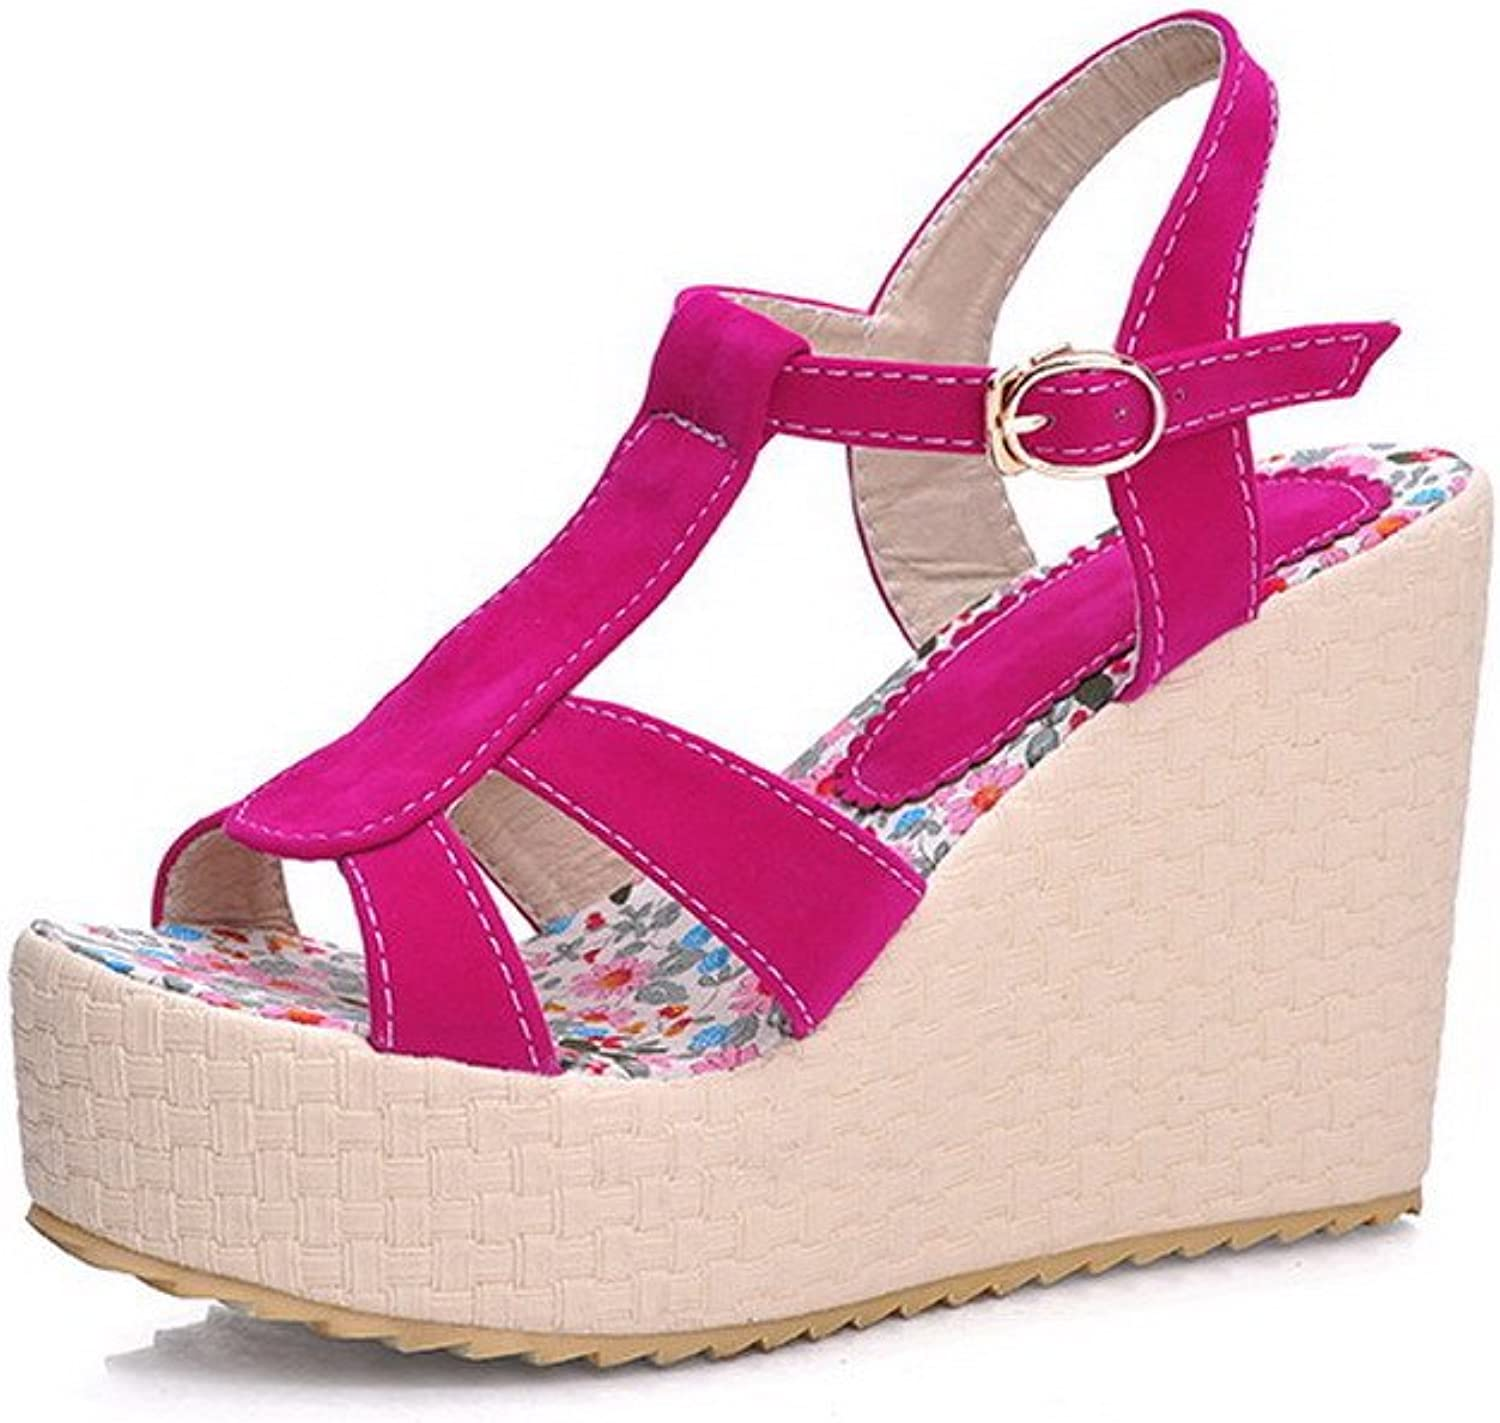 WeenFashion Women's Frosted High Heels Open Toe Solid Buckle Platforms & Wedges